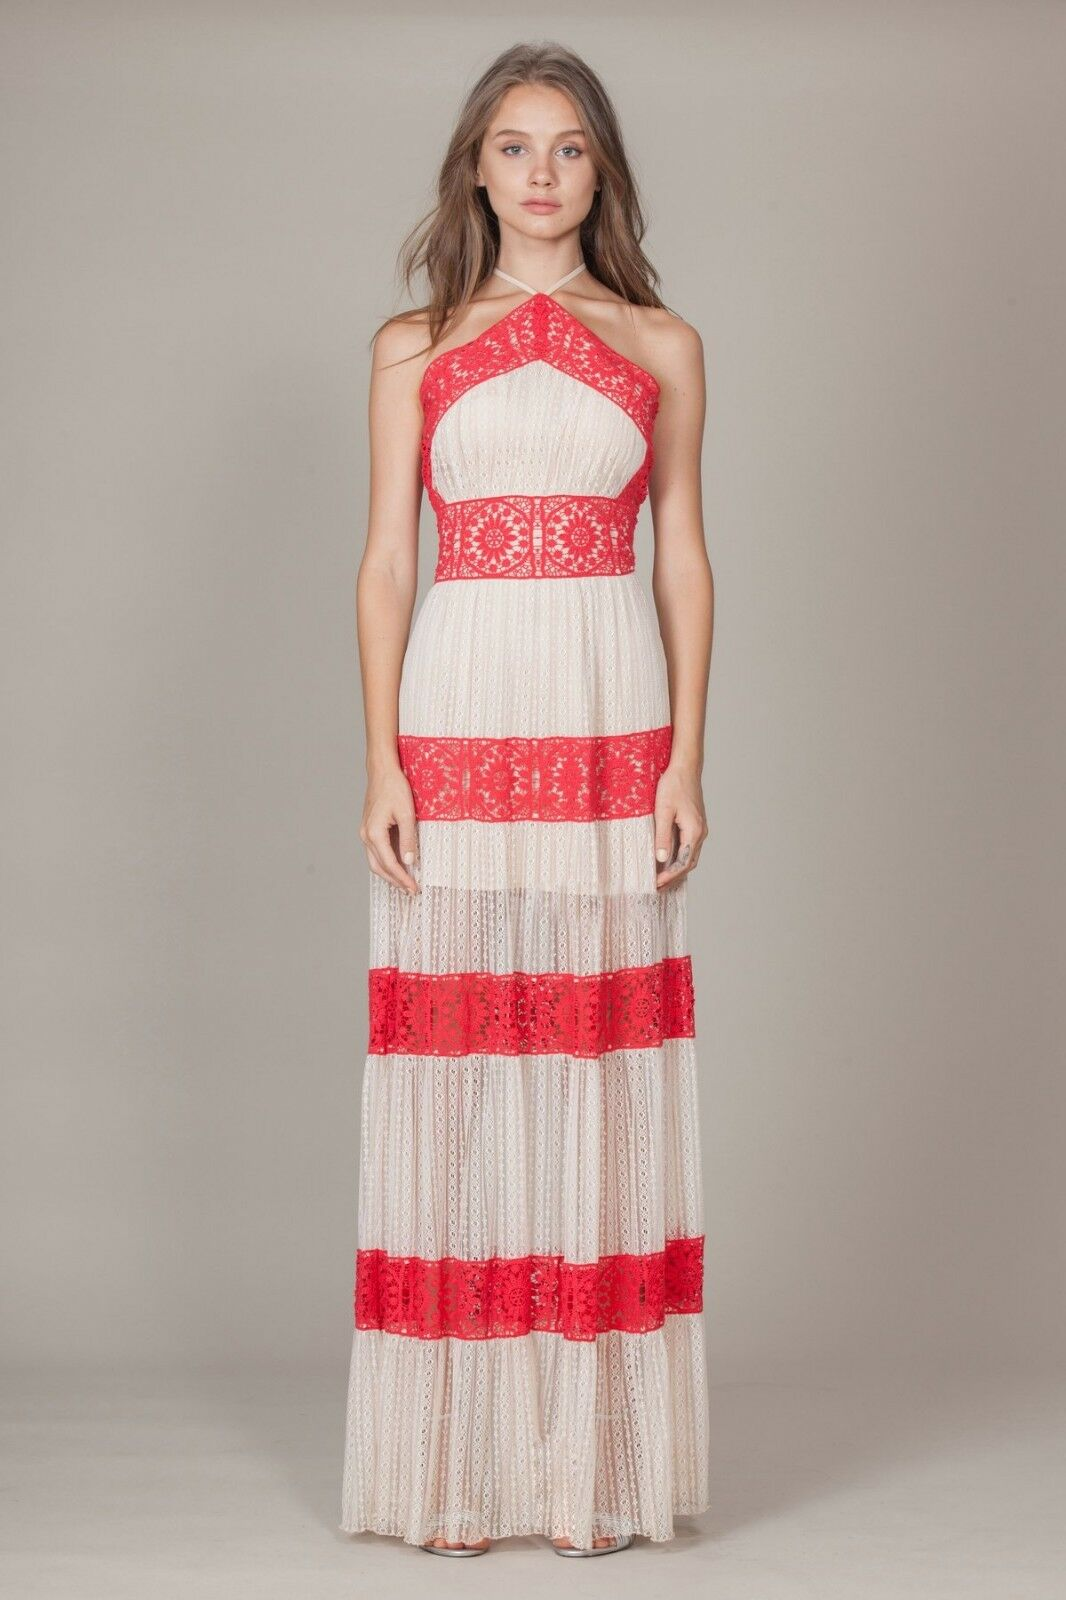 FOXIEDOX Coral Red Nude Ophelia Two-Tone Lace Halter Sporty Maxi Dress M 4 6 NEW